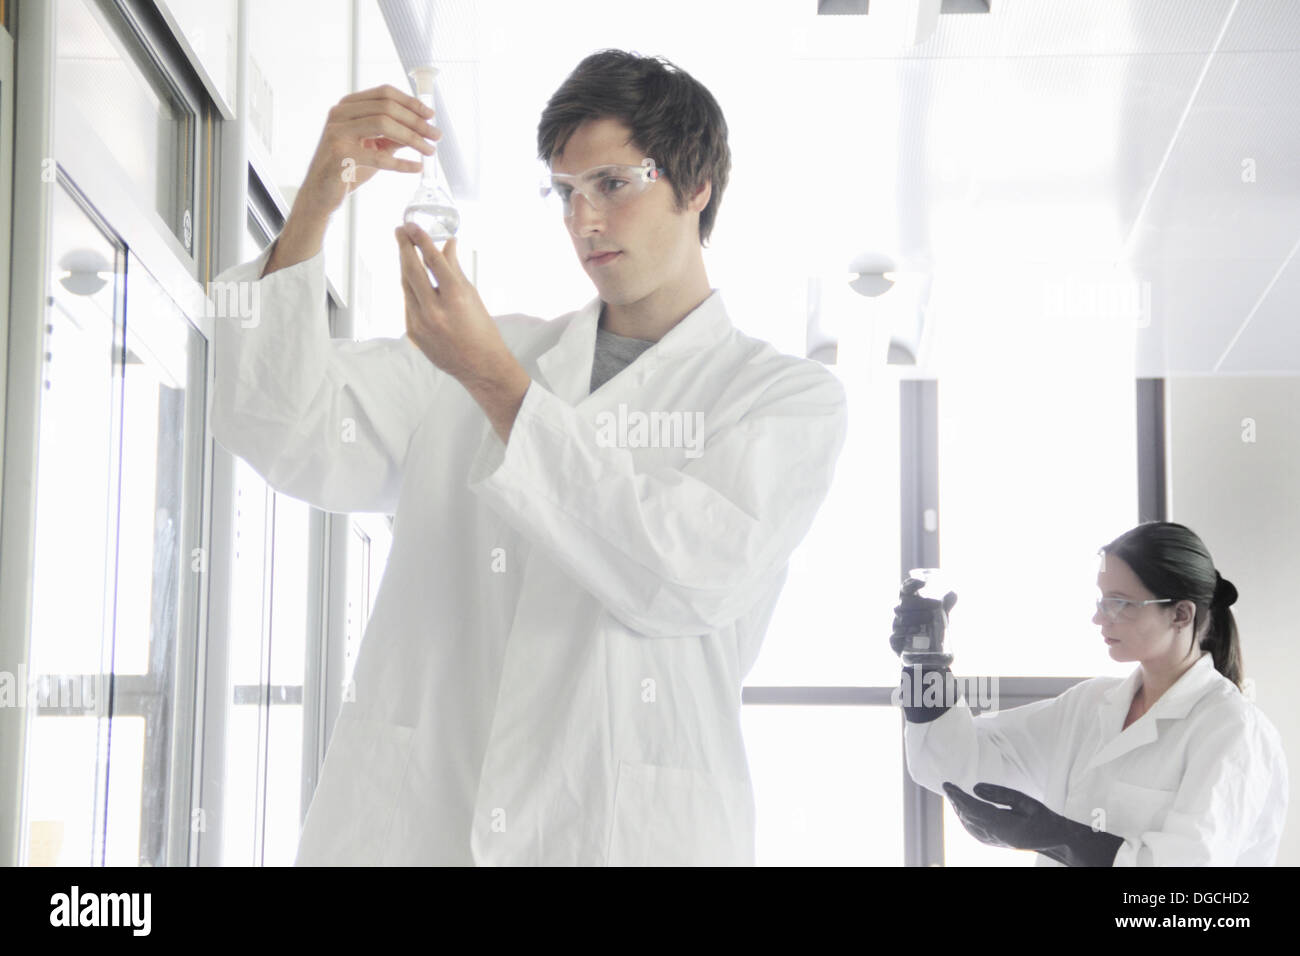 Chemistry students looking at chemicals in lab - Stock Image